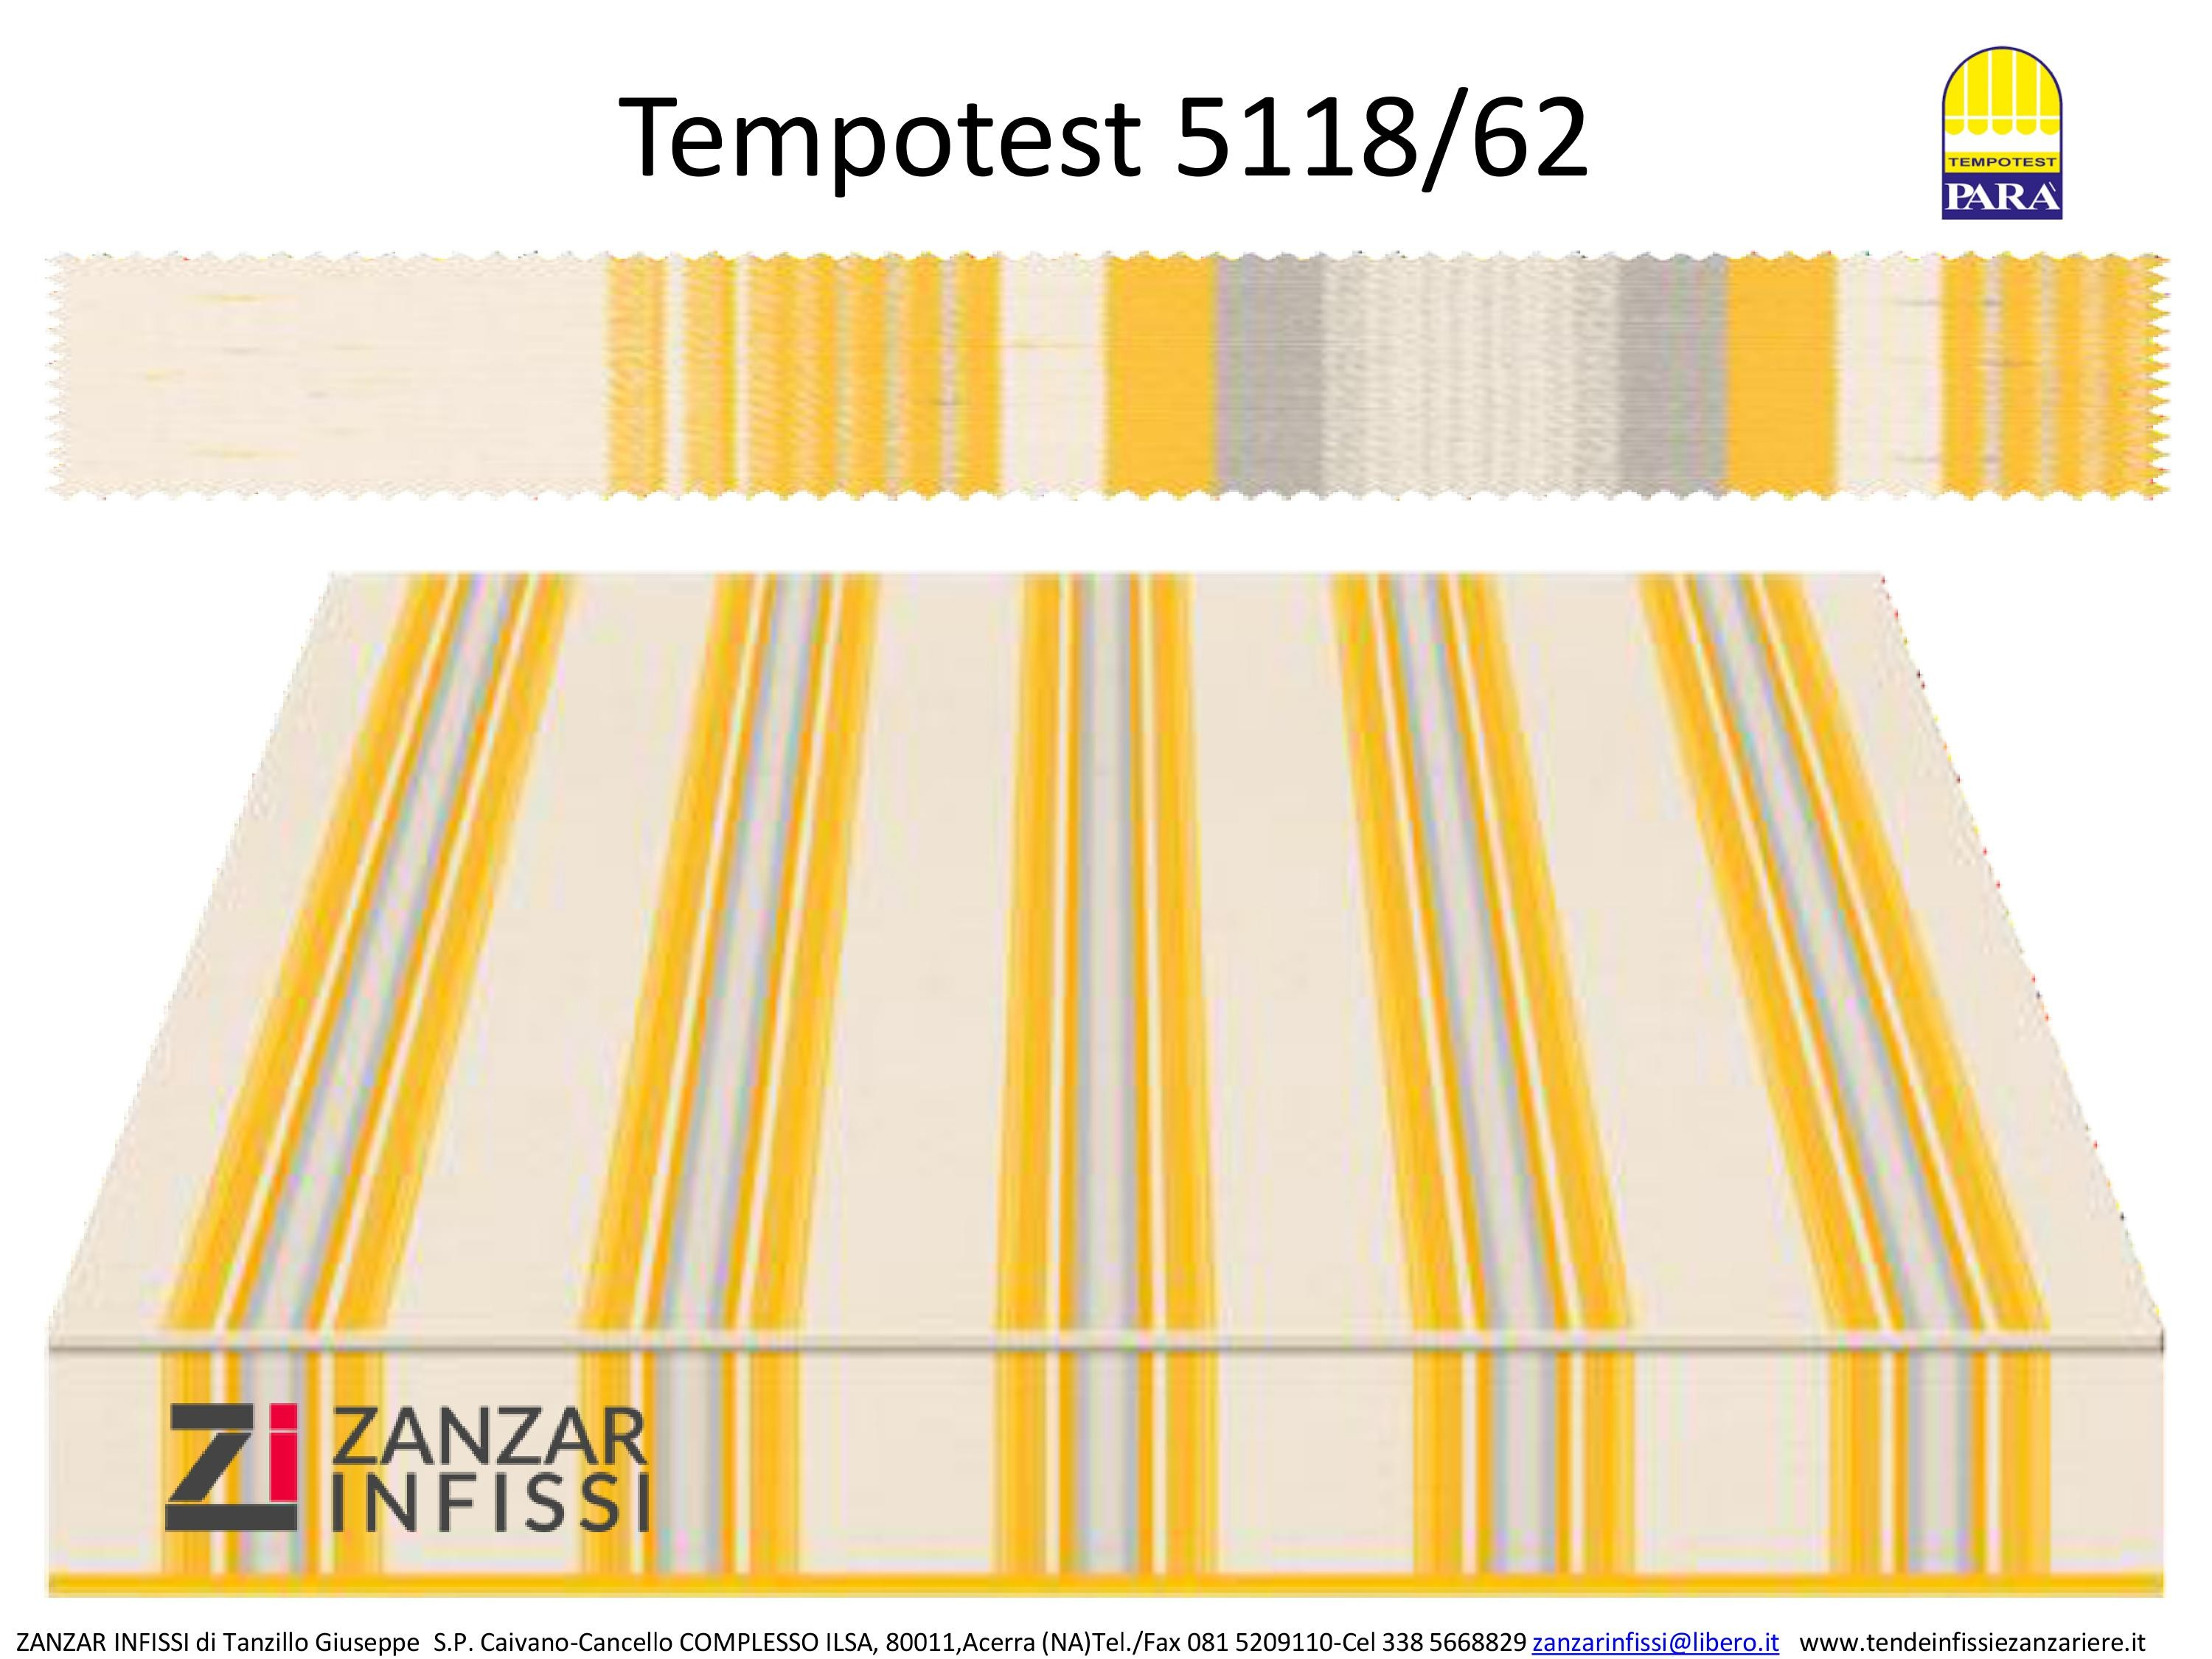 Tempotest 5118/62